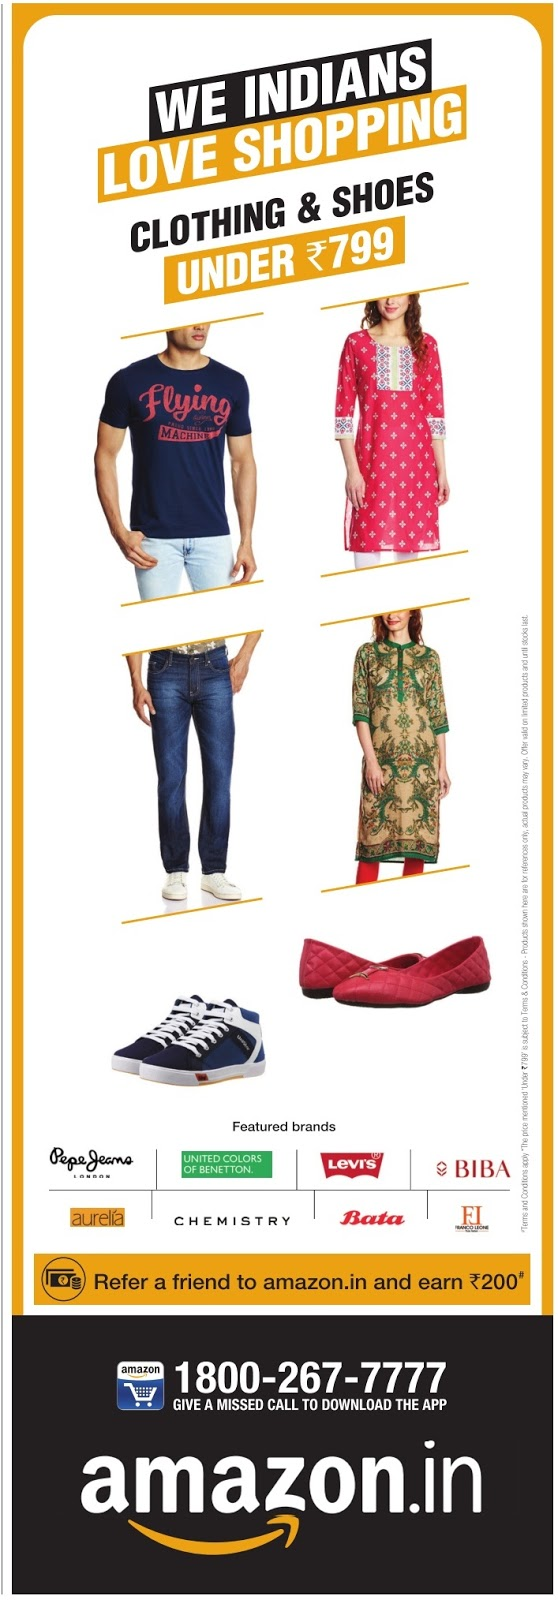 Clothing & Shoes under Rs 799  | April 2016 discount offer